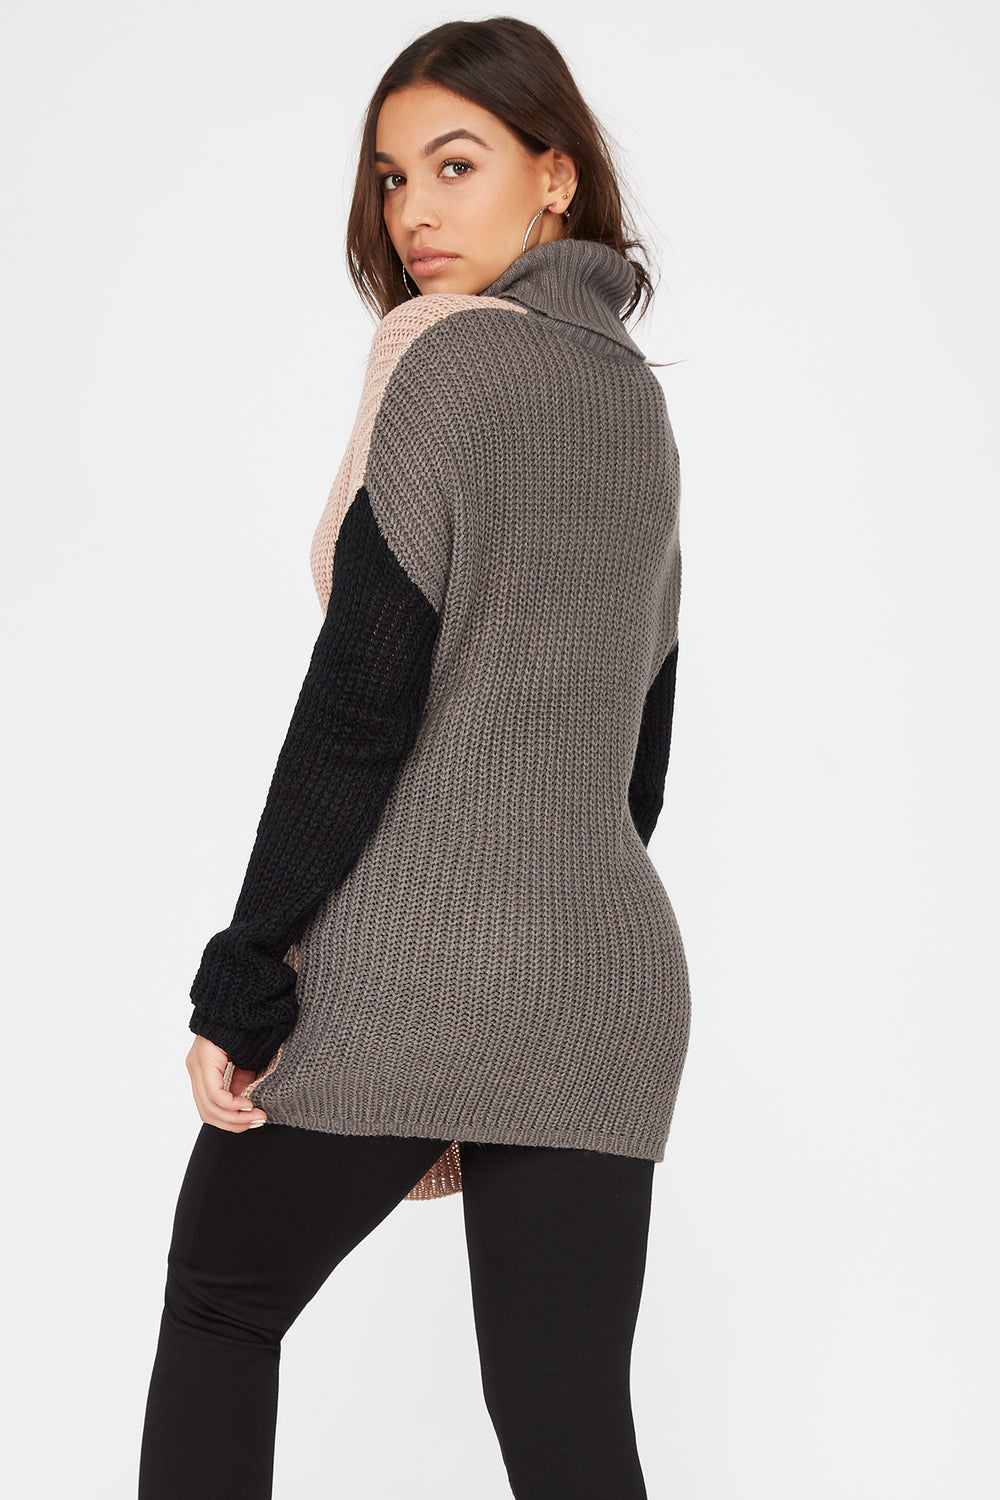 Colour Block Knit Turtleneck Sweater Multi